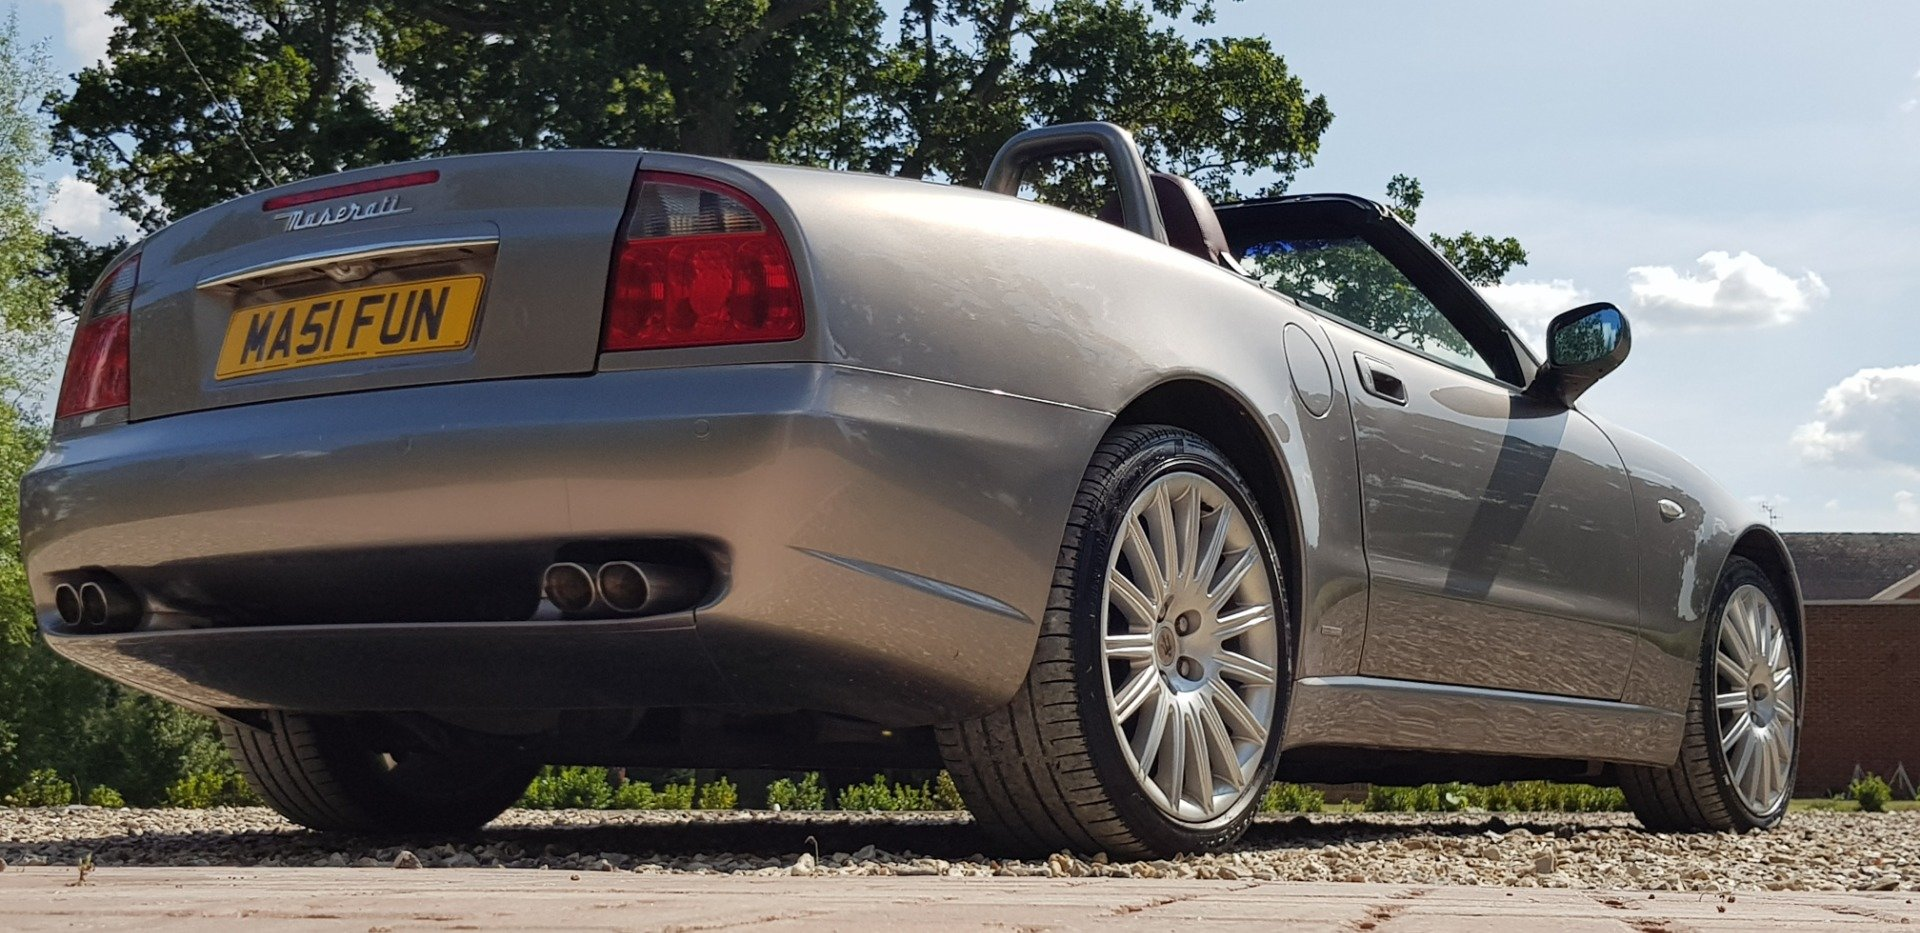 2002 very  low  miles  fsh  simply  stunning  and  sought after   For Sale (picture 4 of 6)